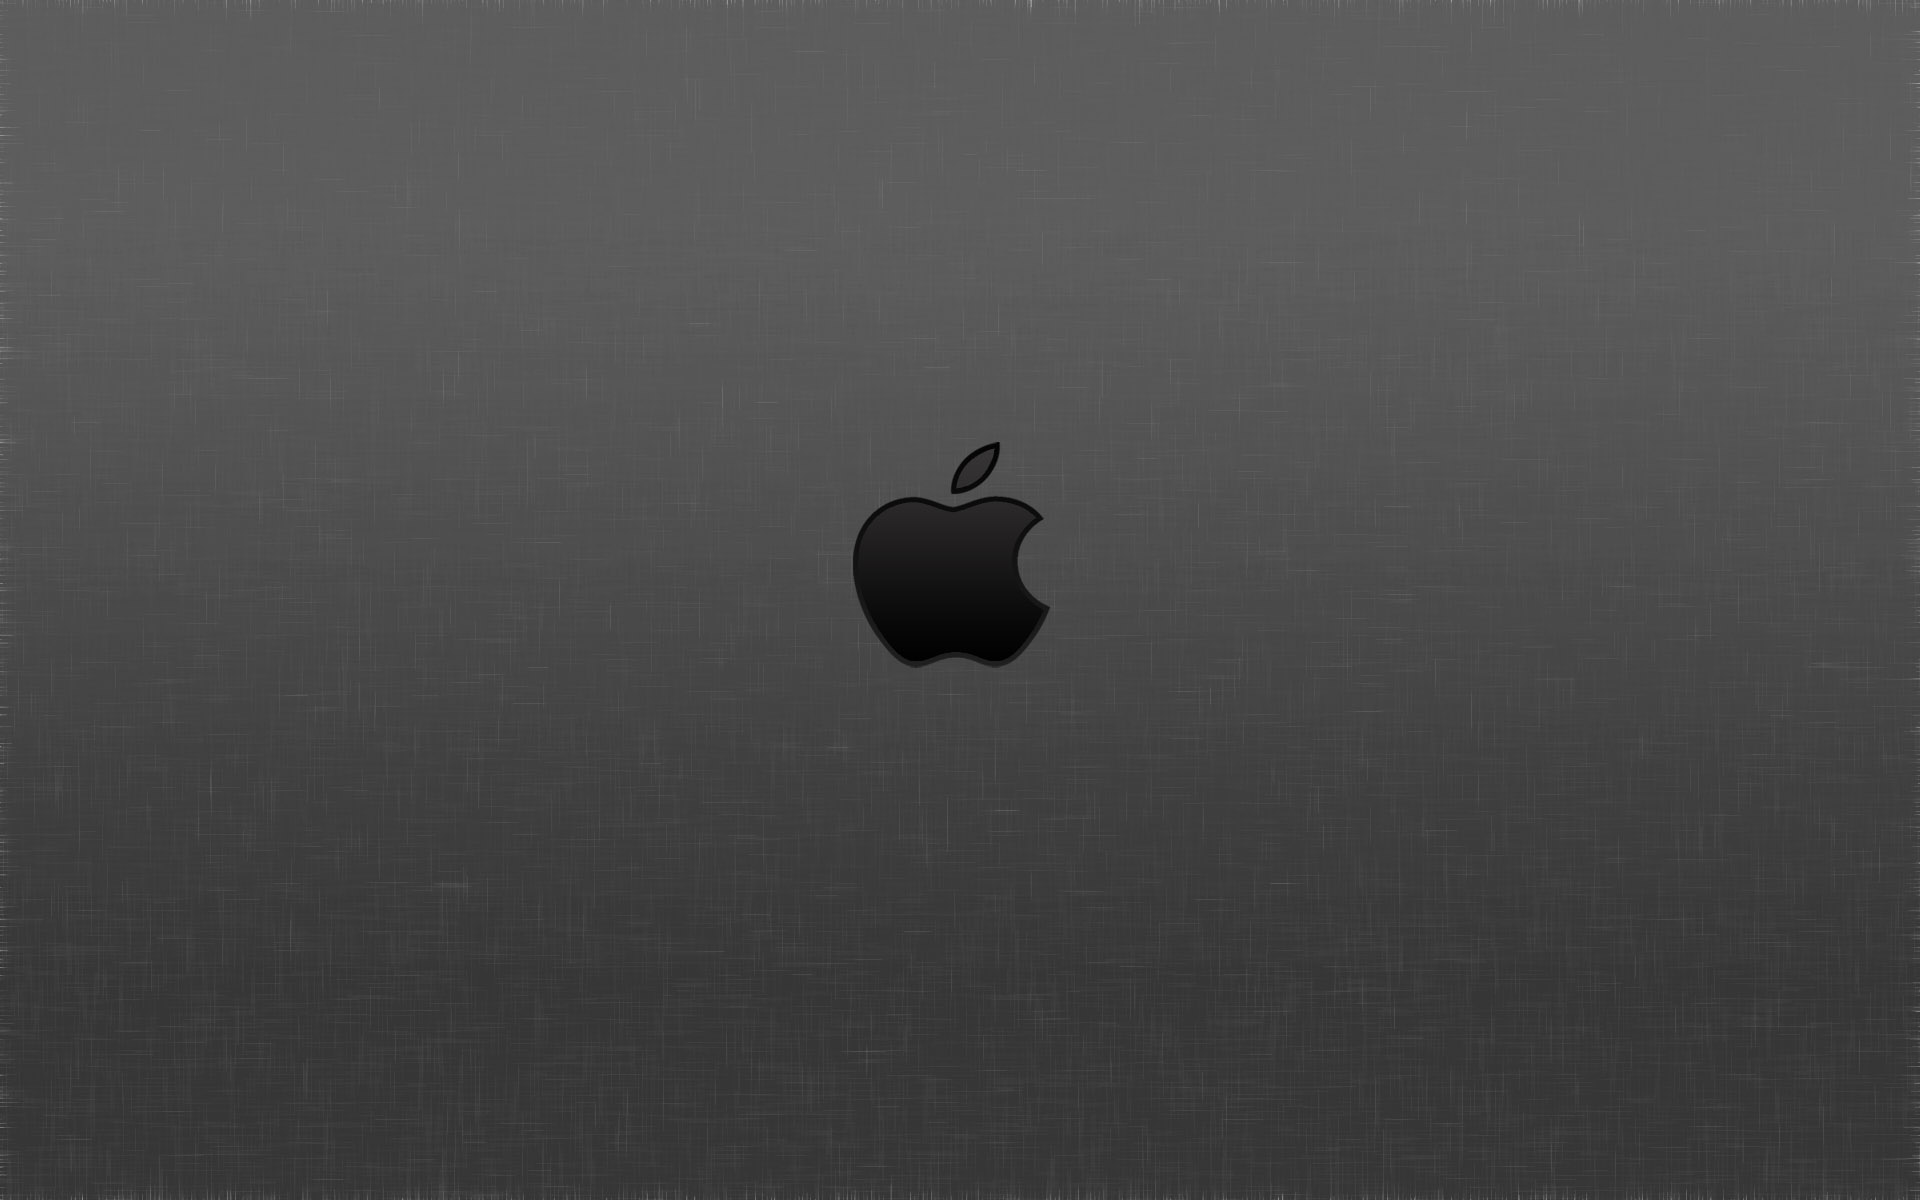 Gray Apple Logo Wallpaper 22107 1920x1200 px